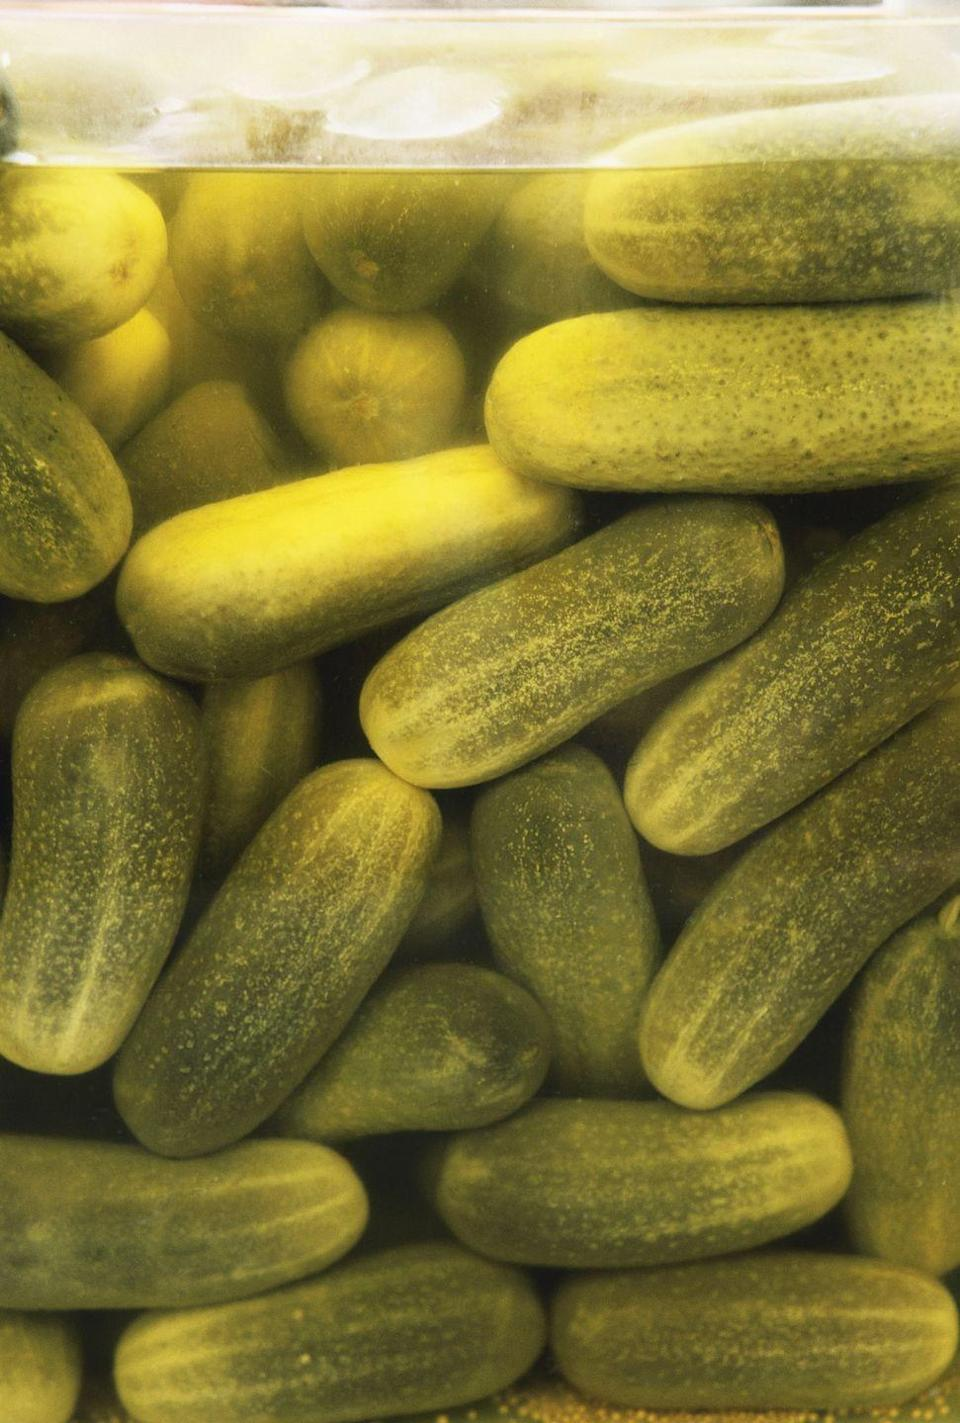 <p>Due to past confusion about the difference between a pickle and a cucumber in Connecticut, the law now decrees that a pickle must bounce to qualify as our beloved, salty snack.</p>